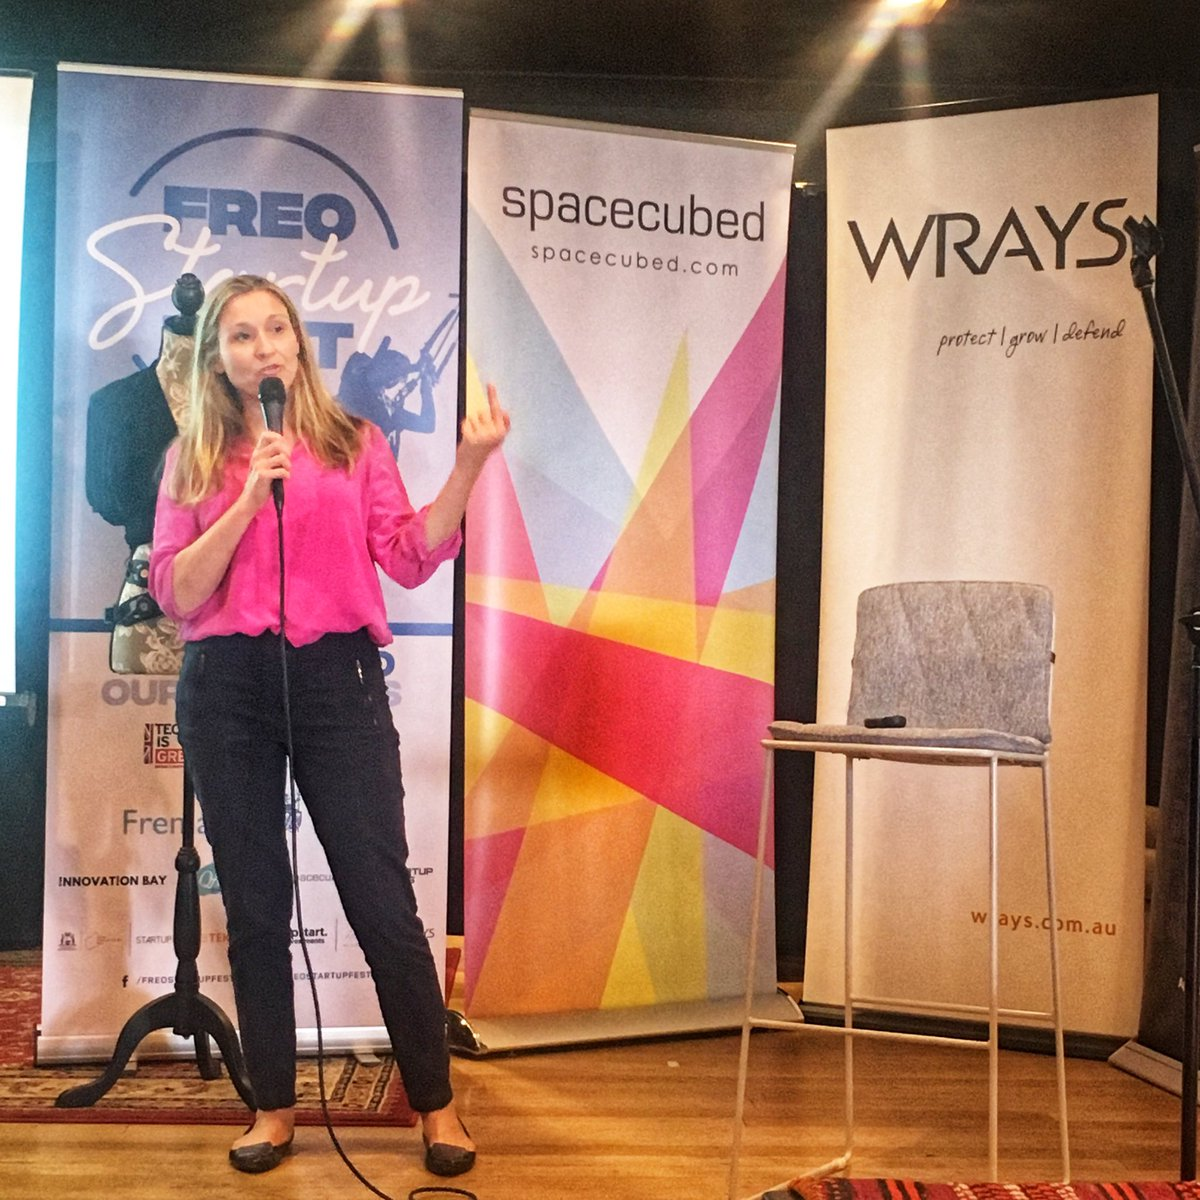 @MaryWebberley pitching Noisy Guts at the @freostartupfest #pitch comp as part of @WestTechFest this week, 8 incredible #Perth #startups showing the talent we have here in #WA!!!   #WTF2019 #westtechfestpic.twitter.com/lrB3ZFzIte